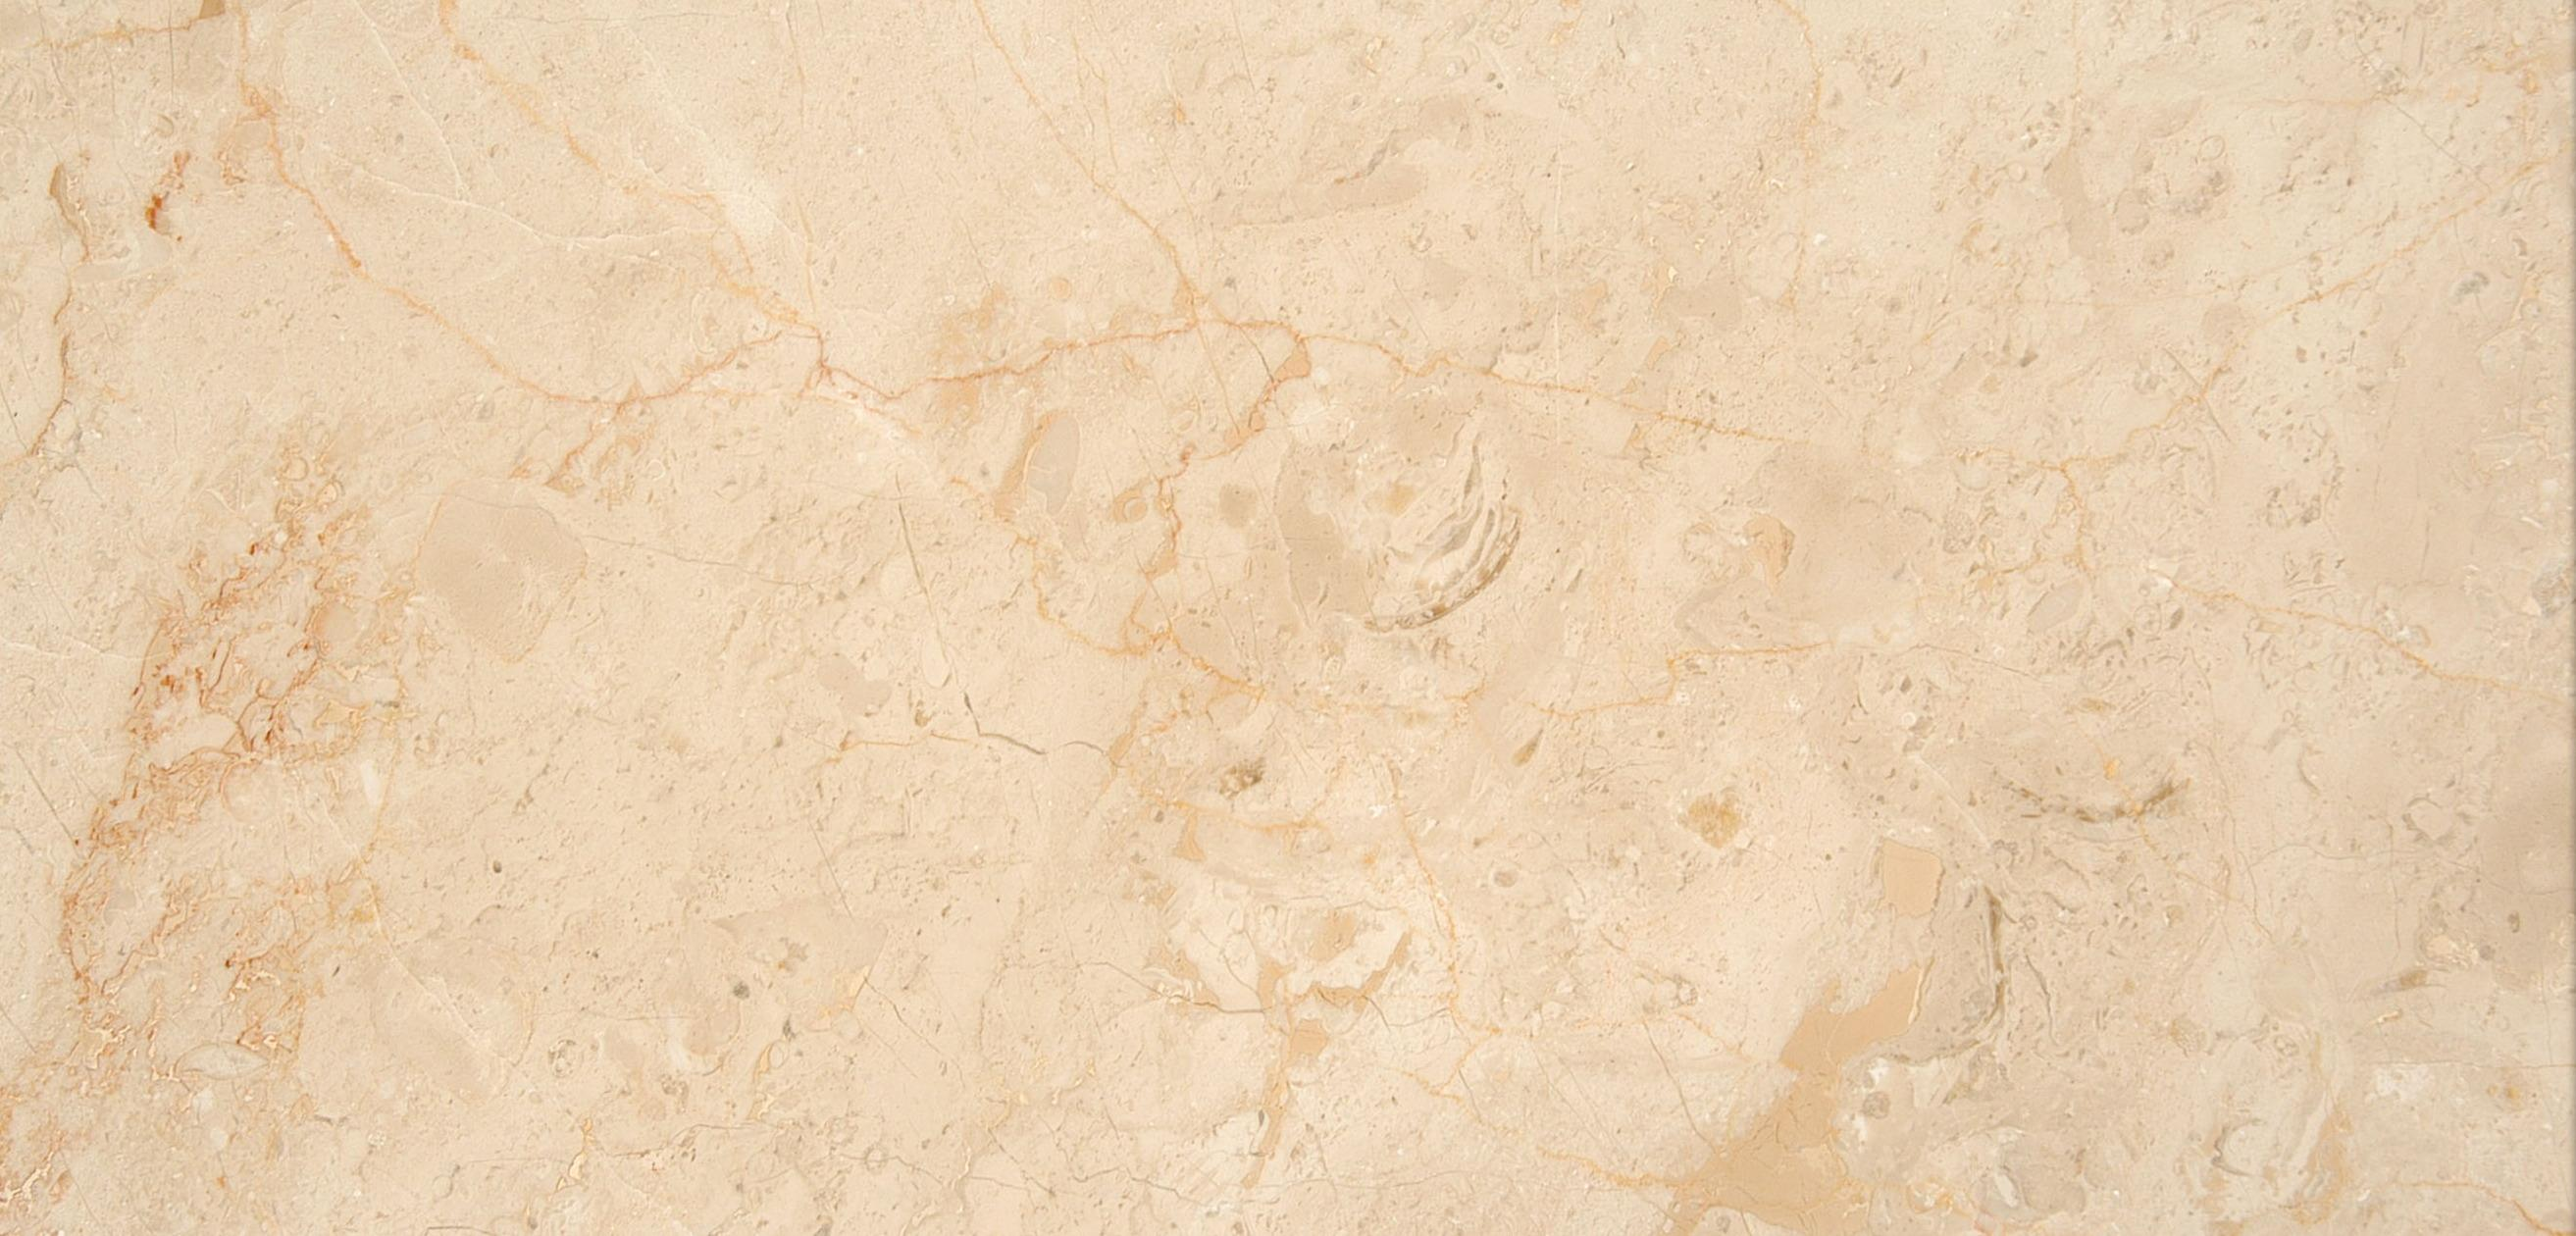 Marble bathroom floor restoration gallery - Home Dh Stone Amp Concrete Polishing